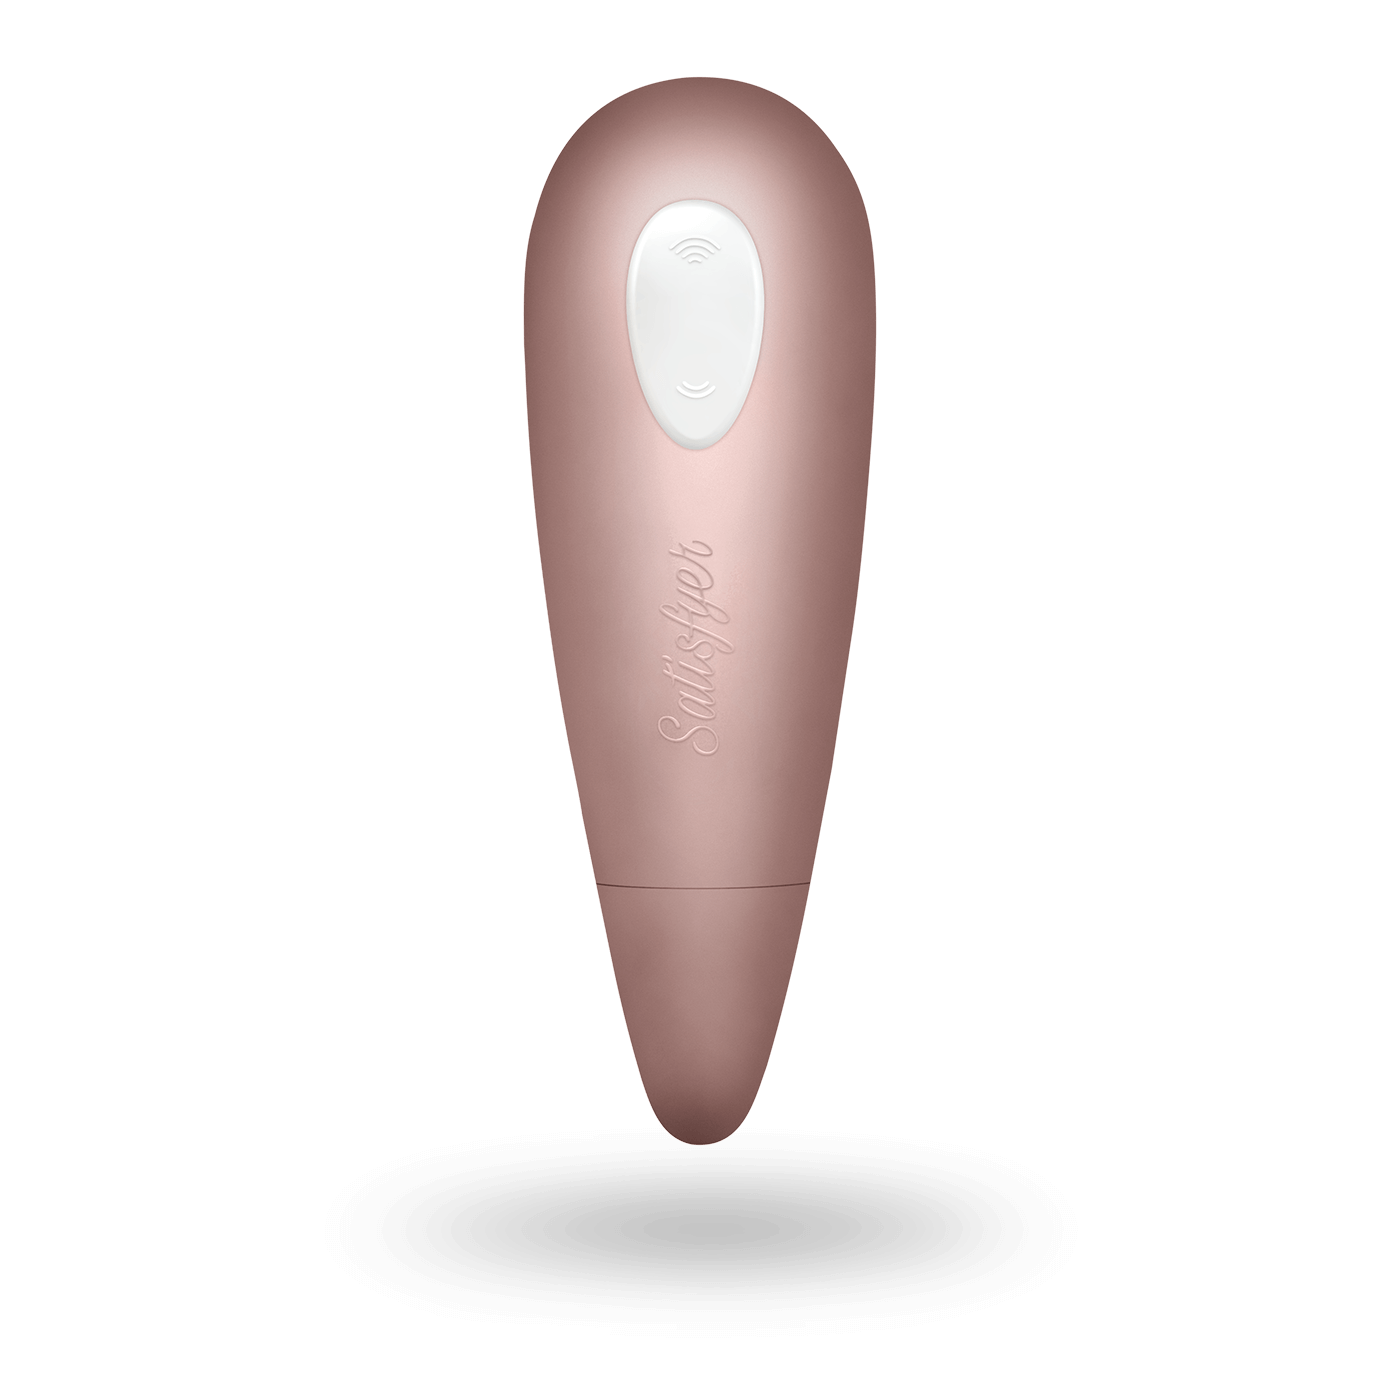 Satisfyer 1 NEXT GENERATION, fotografie 5/5